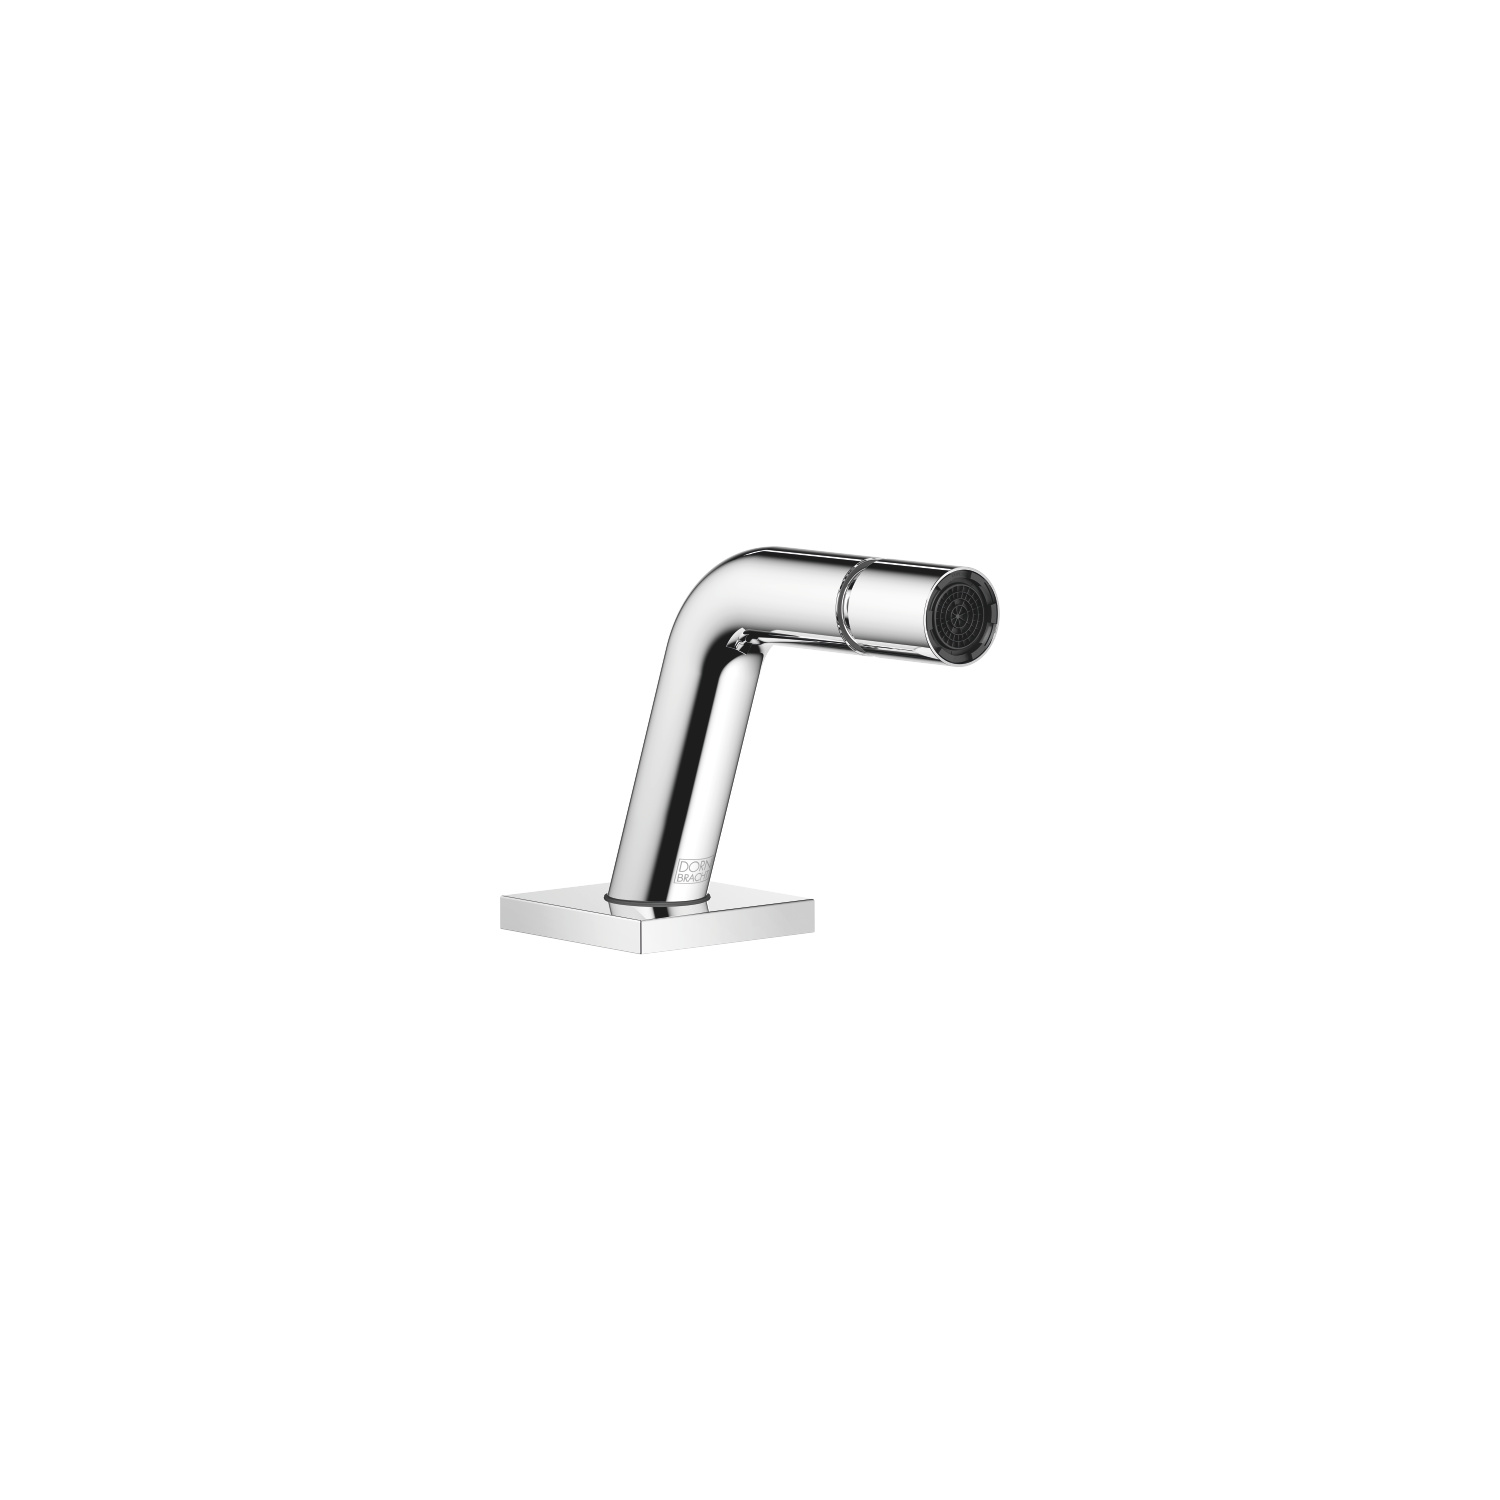 Deck-mounted bidet spout without pop-up waste - polished chrome